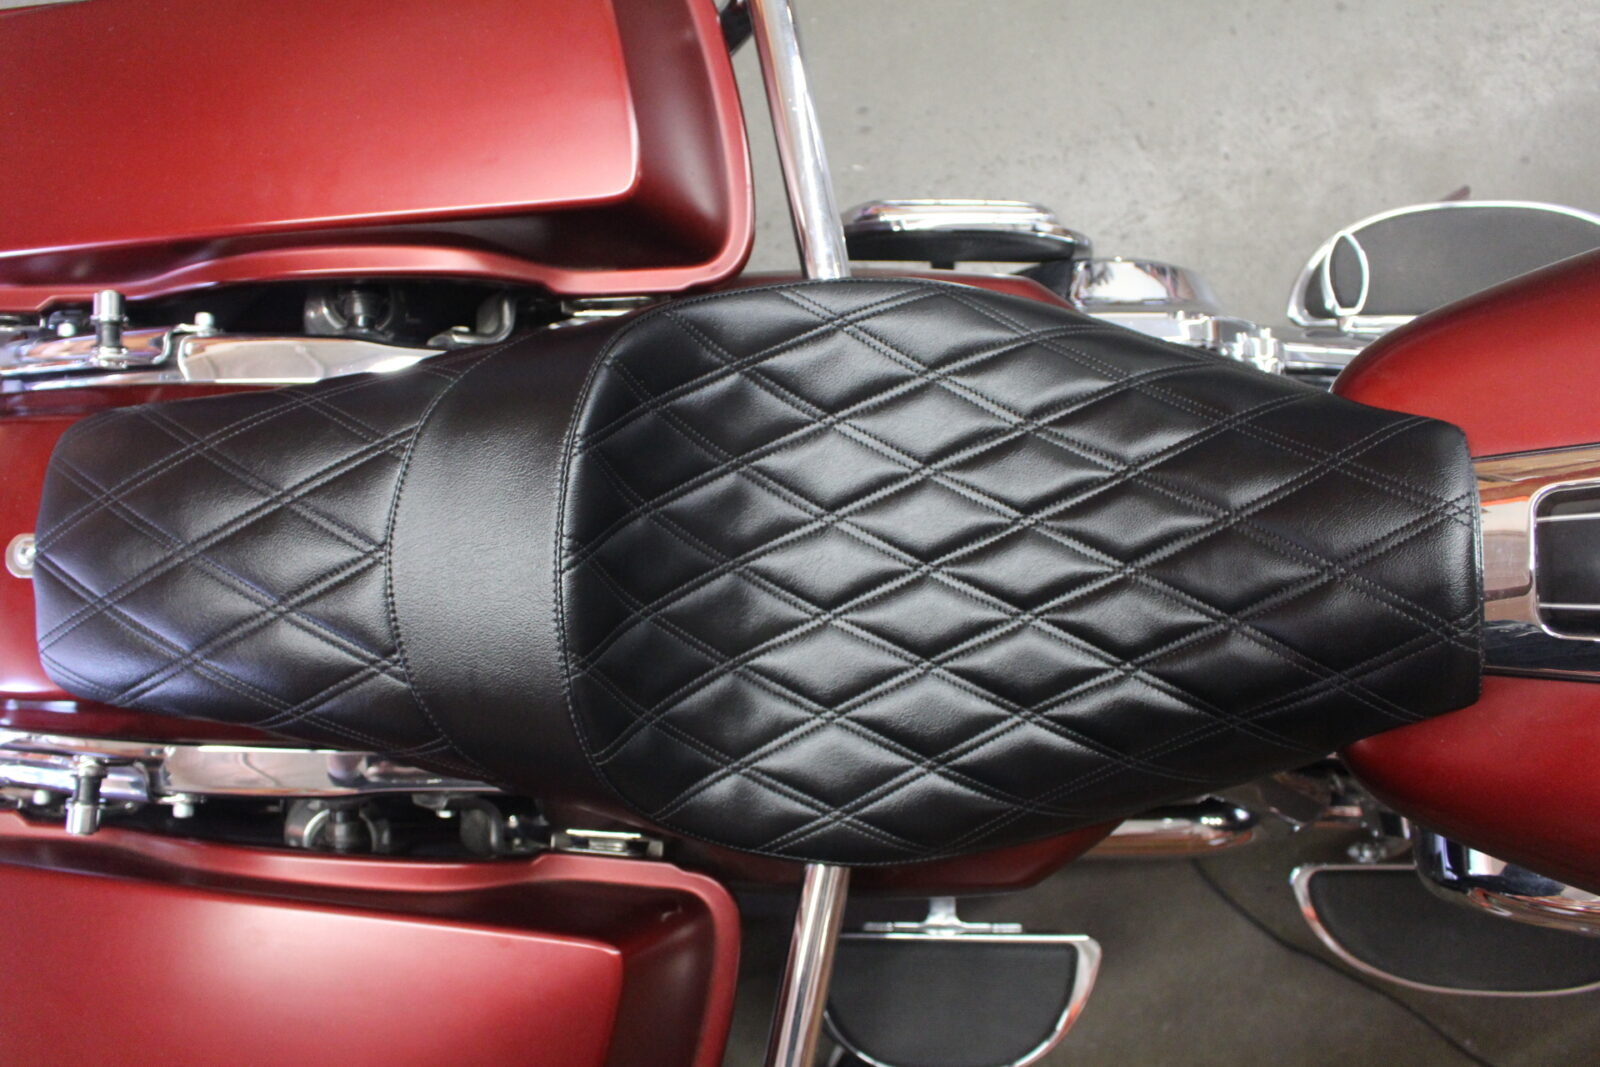 Marvelous Cc Motorcycle Seats Hand Made High Quality Craftsmanship Machost Co Dining Chair Design Ideas Machostcouk